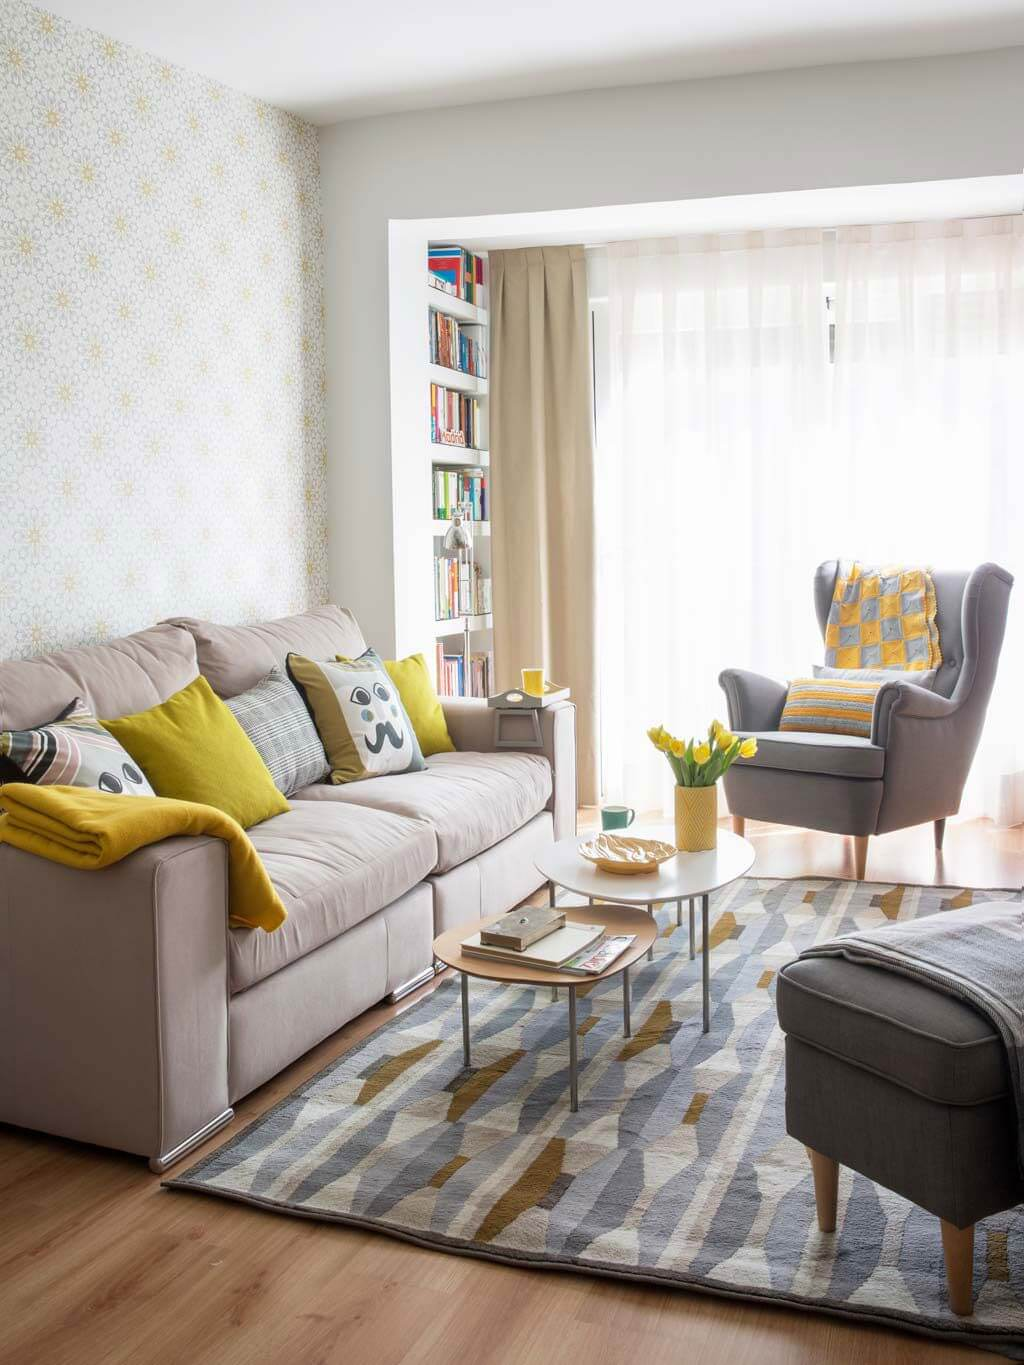 Decorate Living Room With One Window: 25+ Best Small Living Room Decor And Design Ideas For 2019